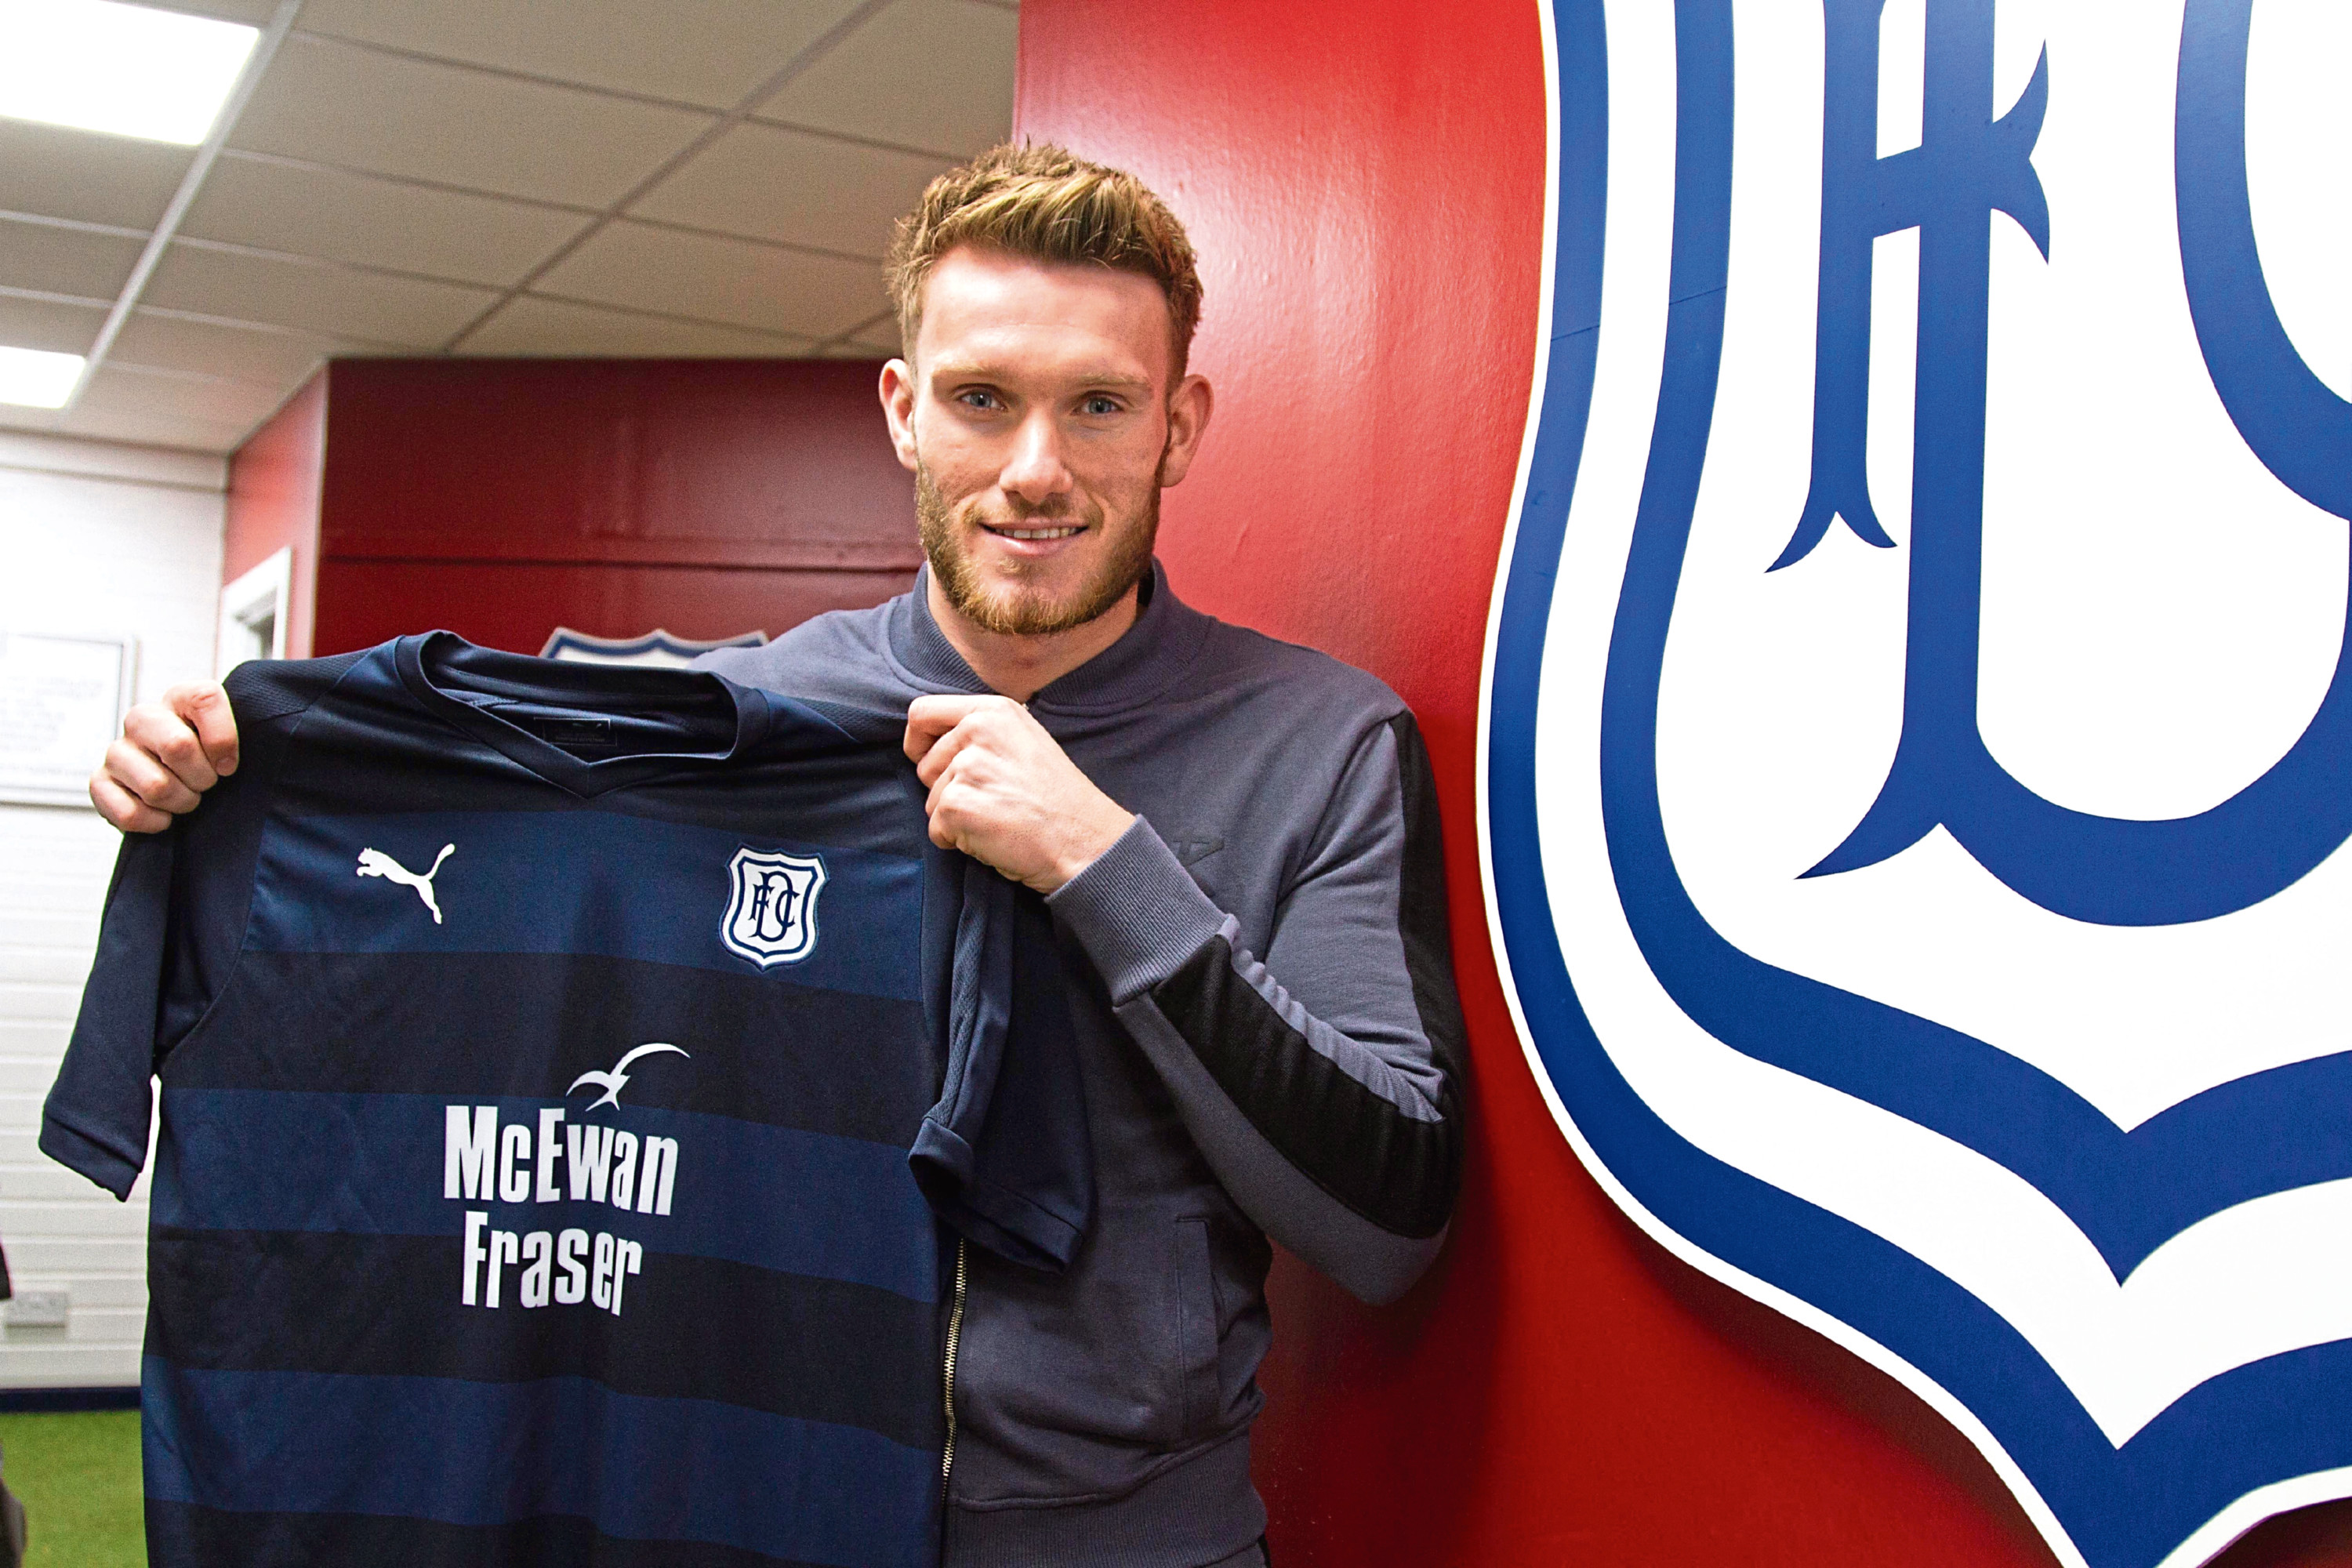 Dundee new boy Andy Dales has joined the Dark Blues on loan from Scunthorpe United until the end of the season